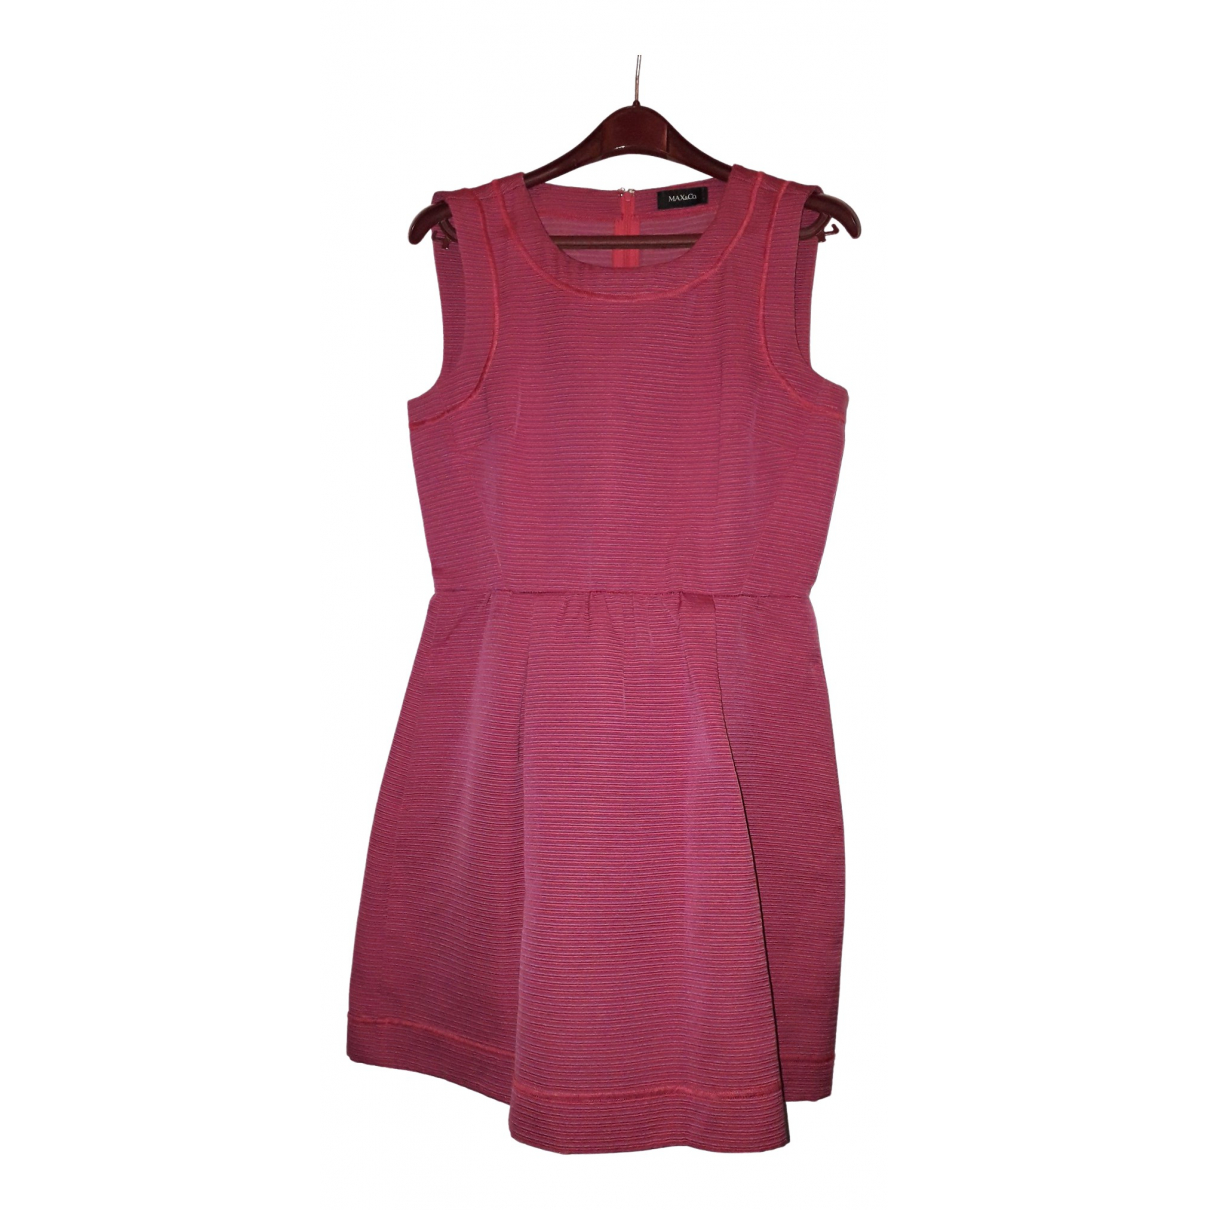 Max & Co \N Pink Cotton dress for Women 40 IT